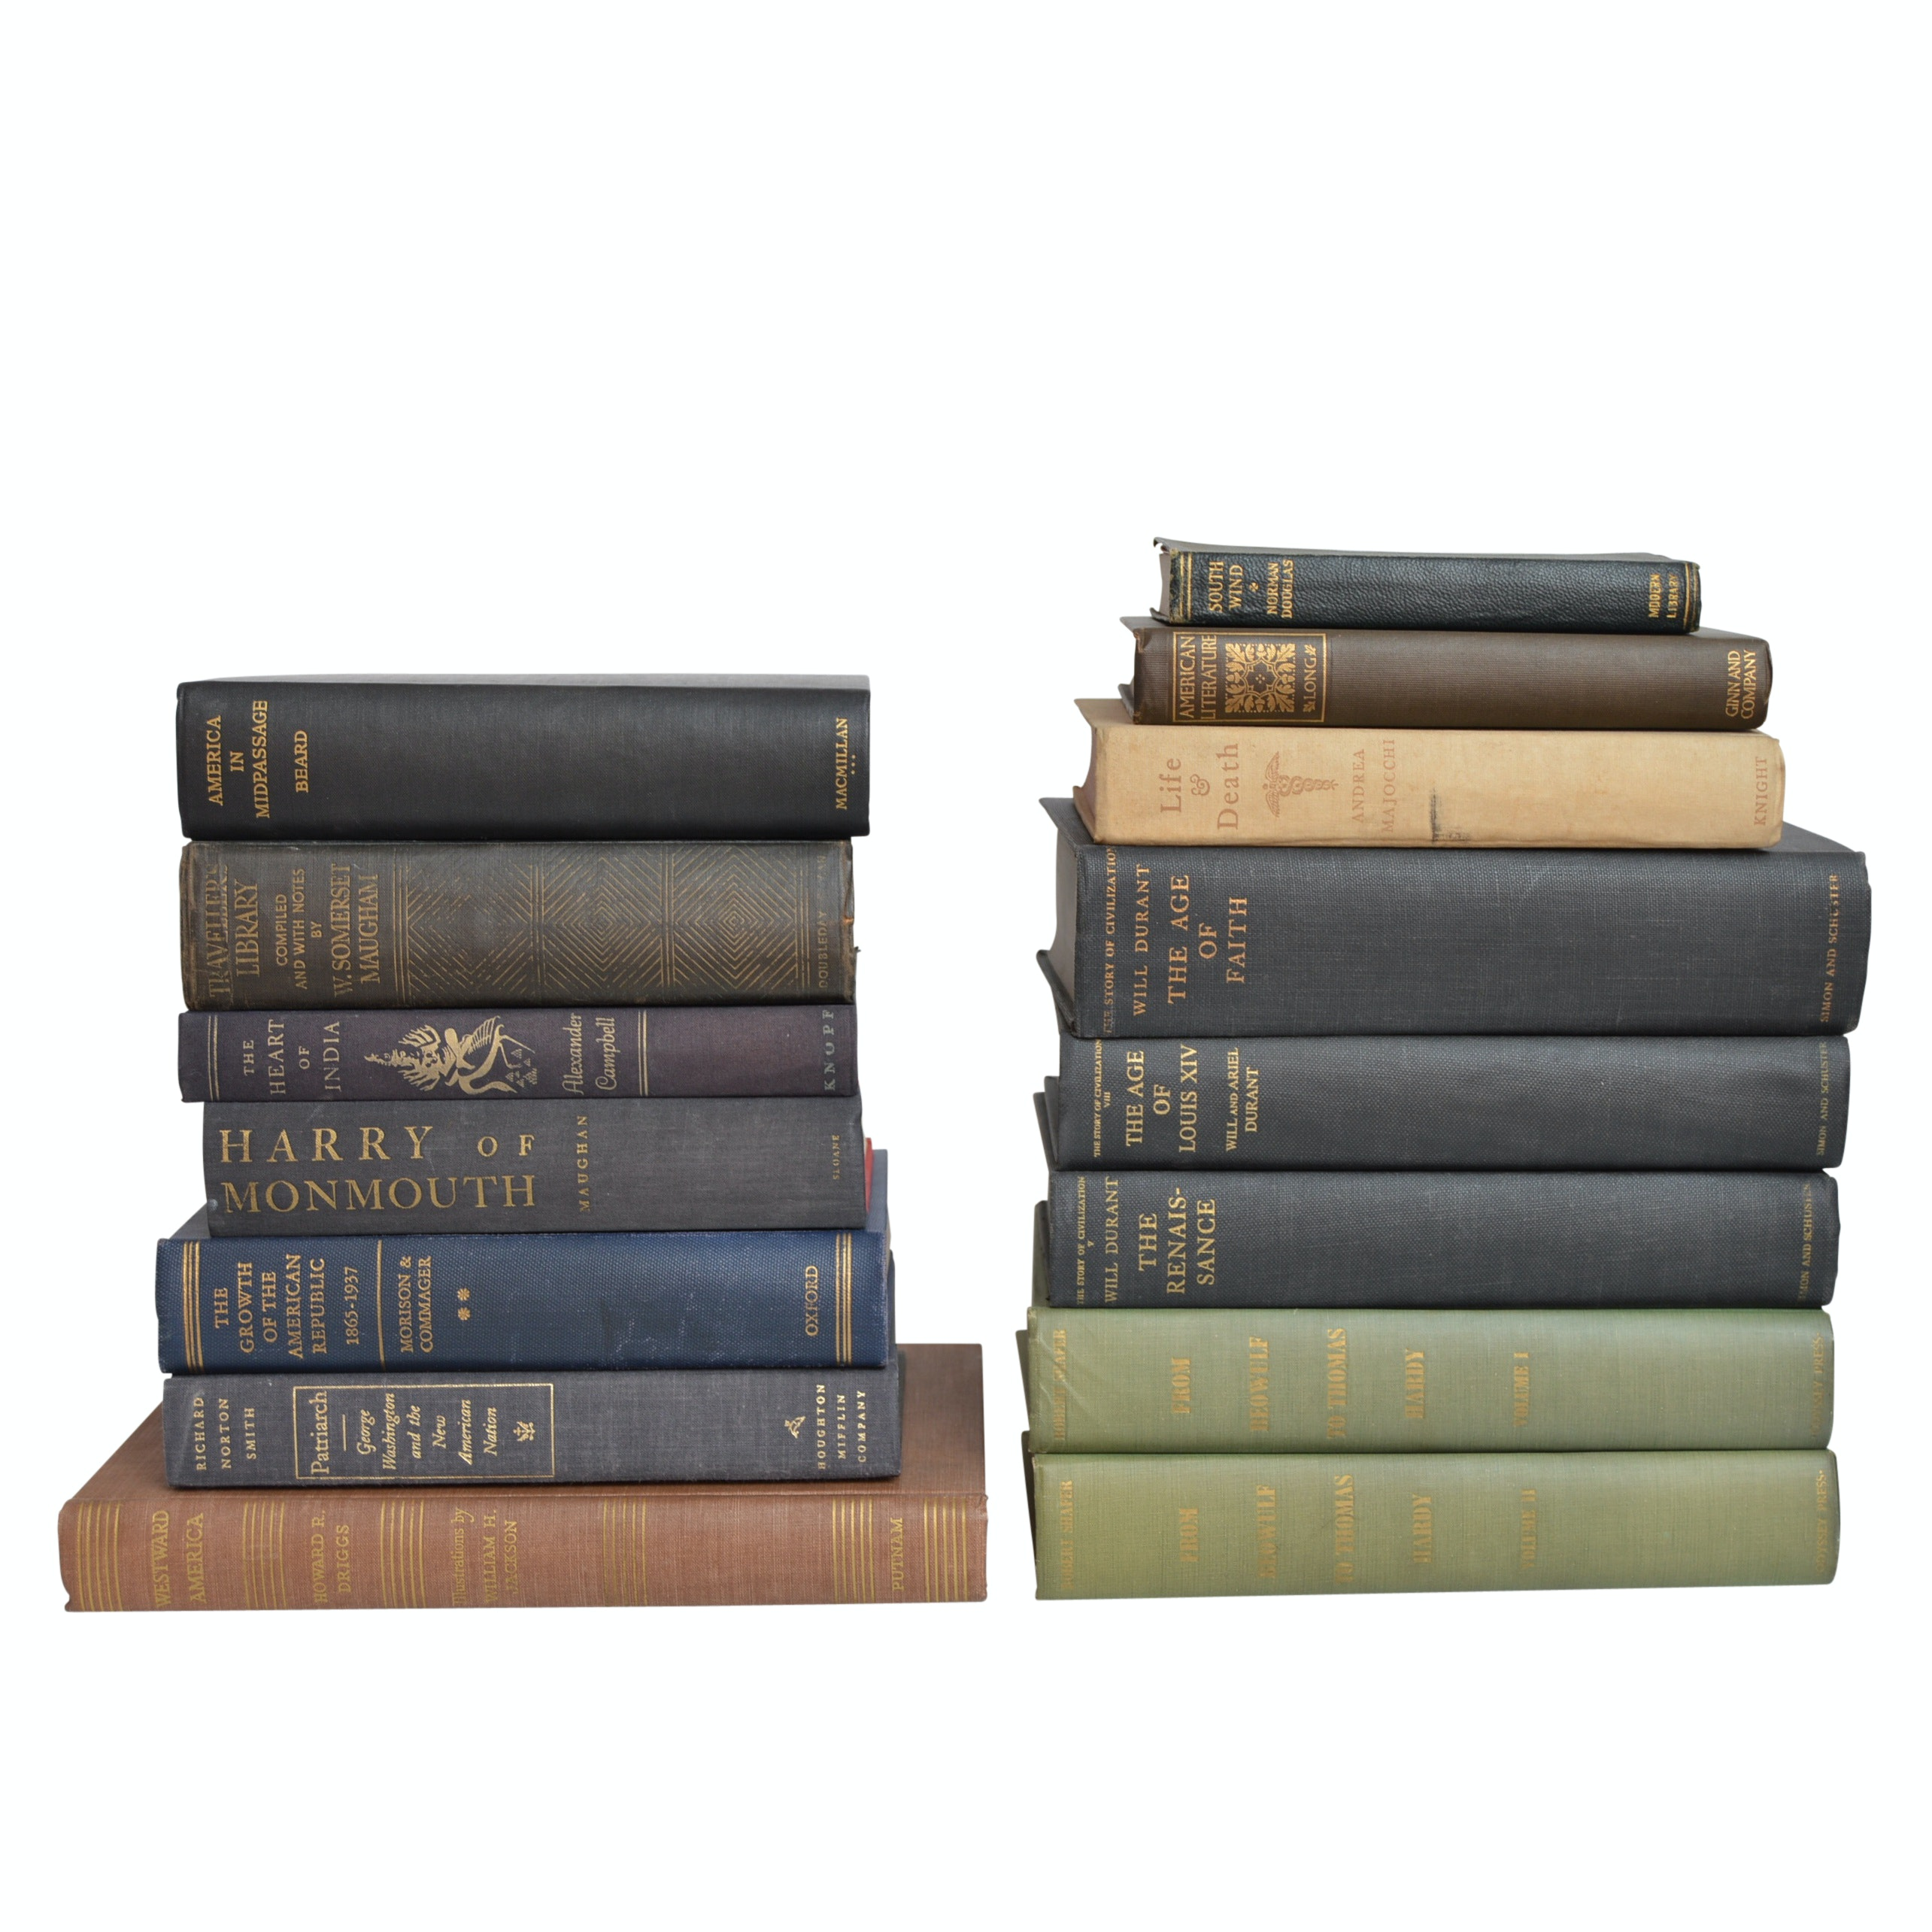 Vintage Books on European and American History with First Editions,